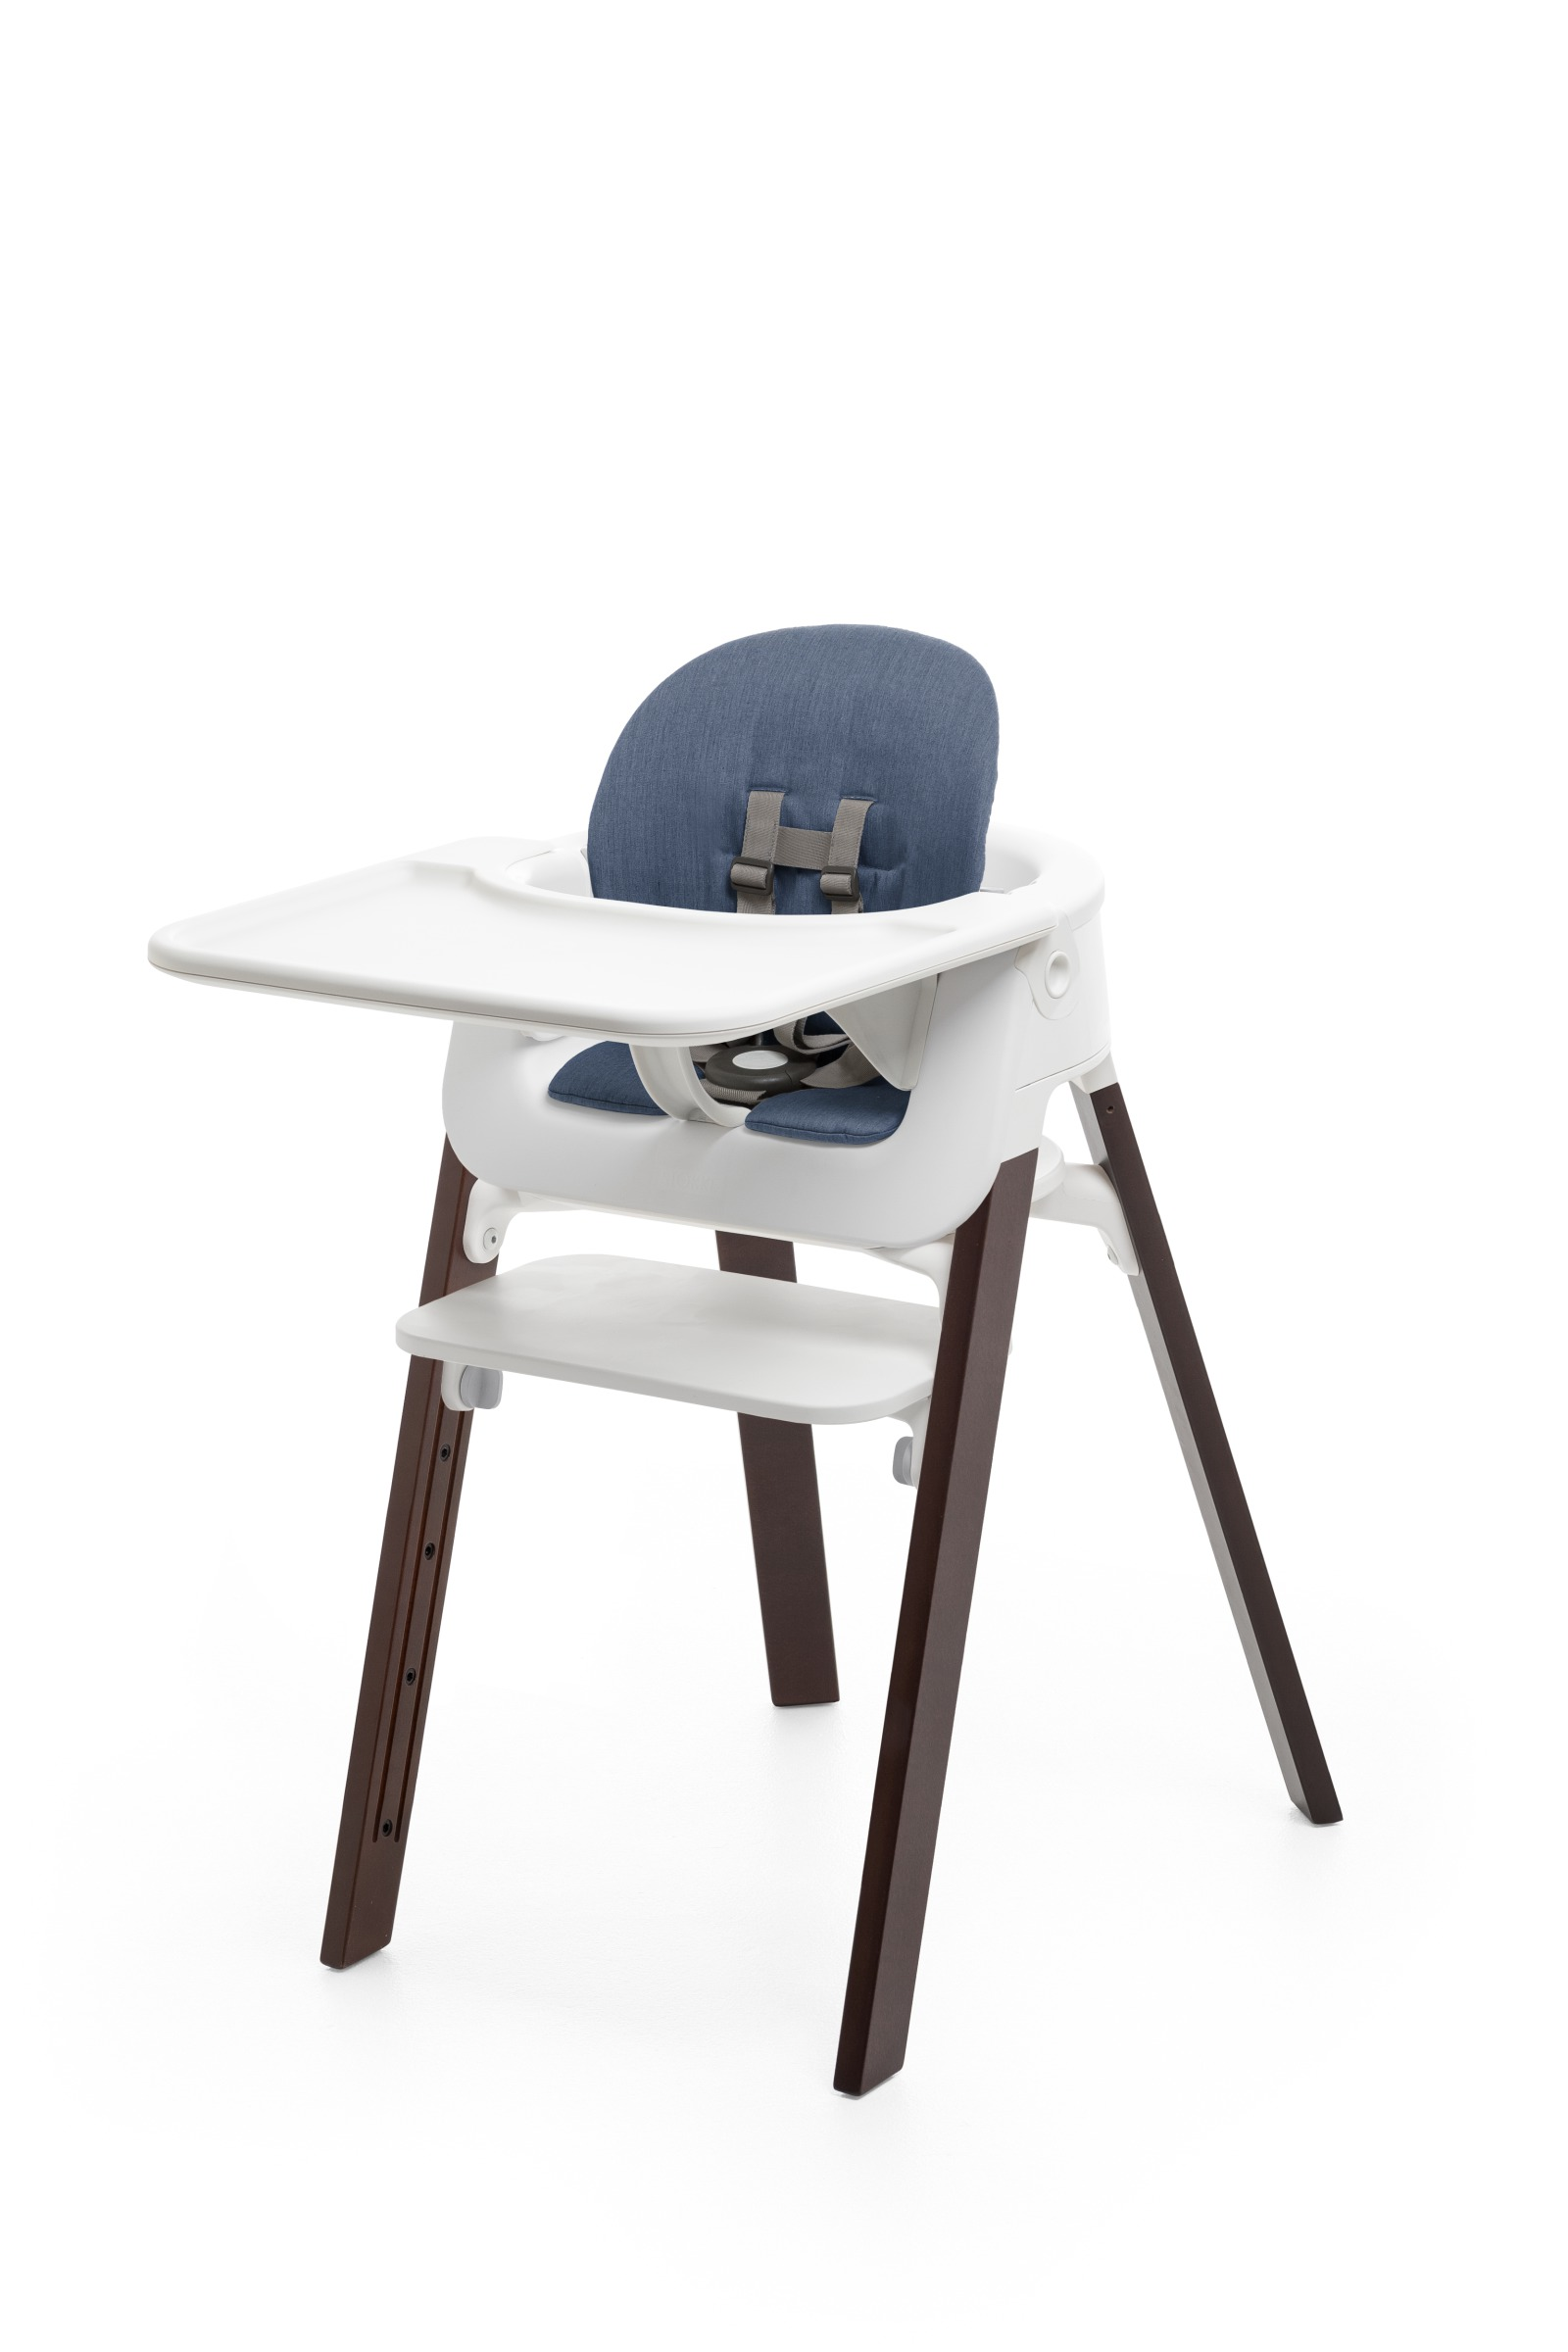 Accessories. Tray, Baby Set and cushion (Blue). Mounted on Stokke Steps highchair.